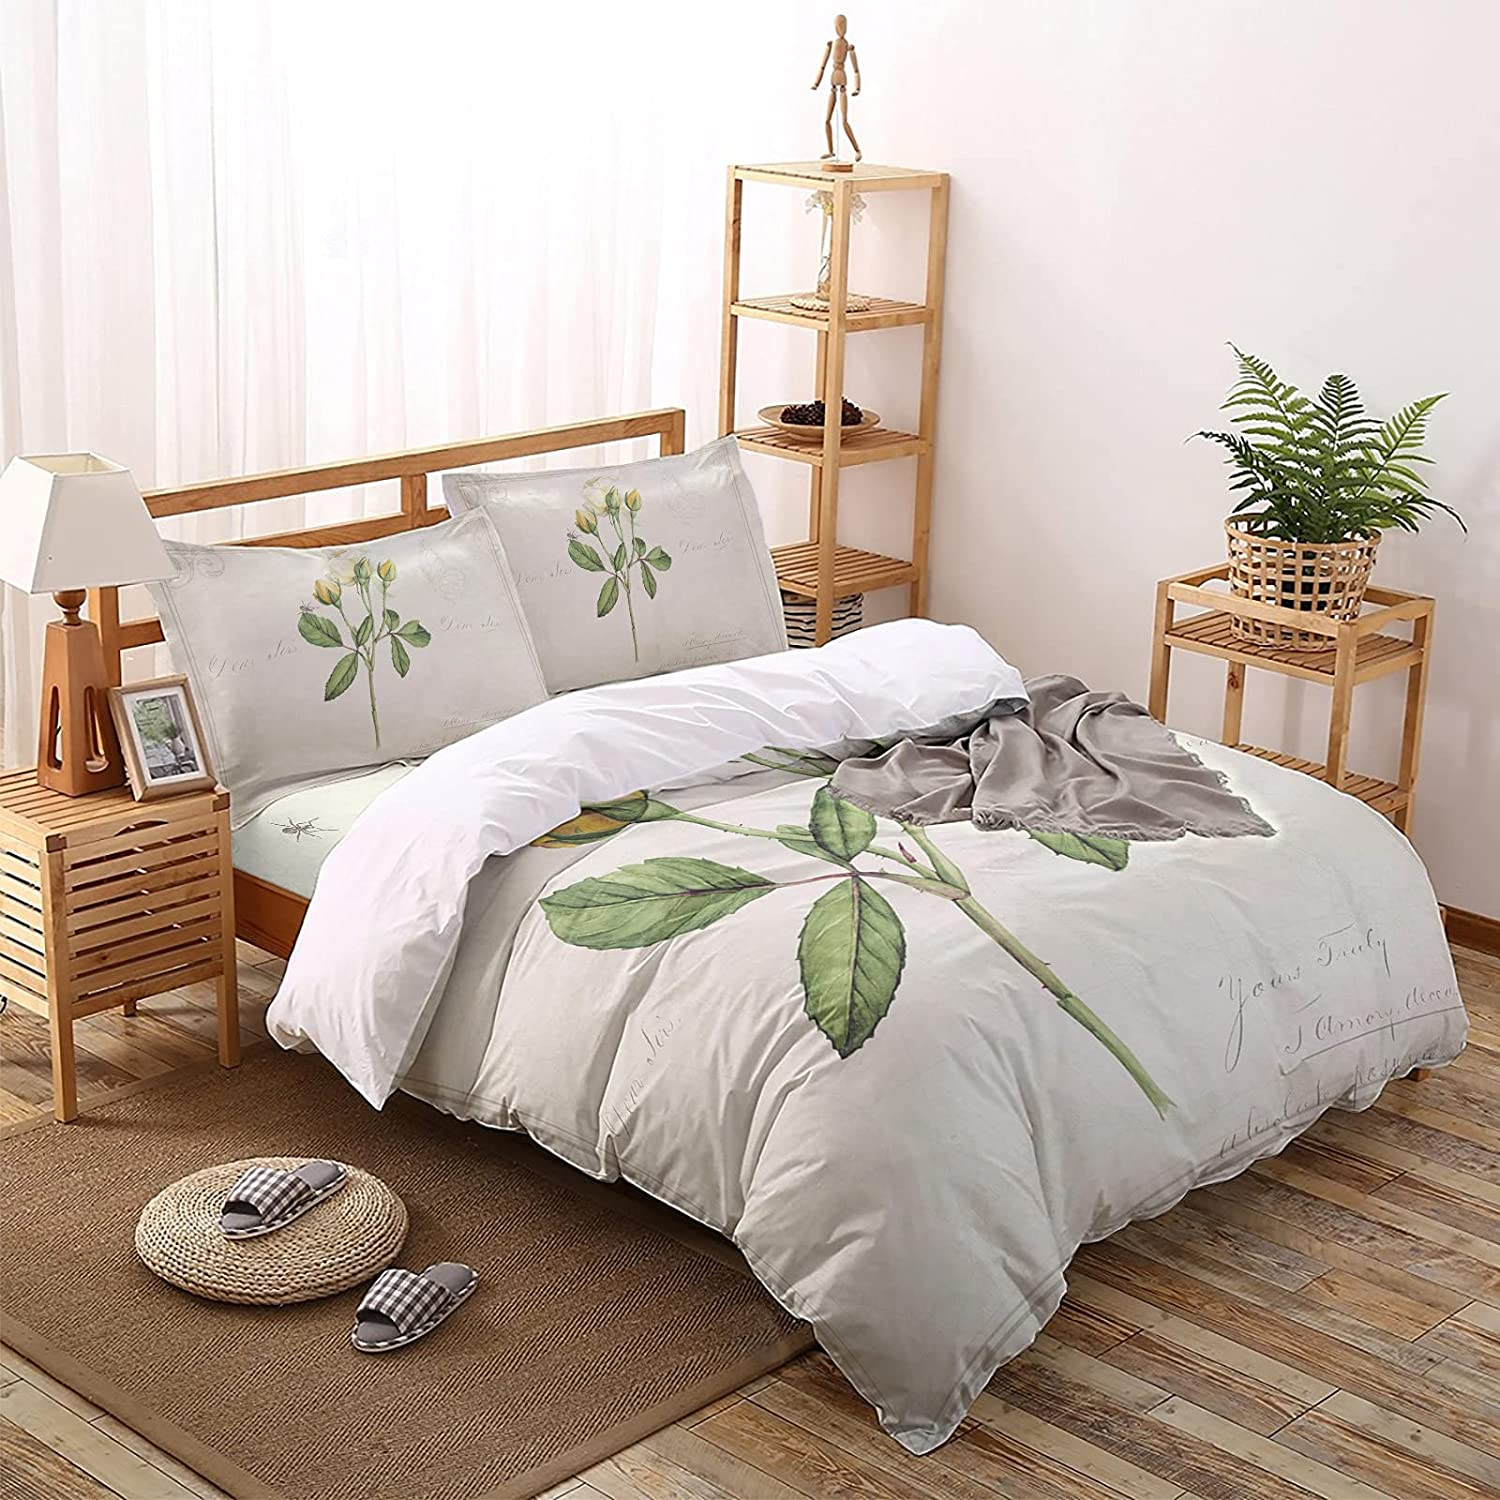 MuswannaA 4 Pieces Duvet Fort Worth Mall Cover Luxury Soft R Very popular Set Bedding Elegant